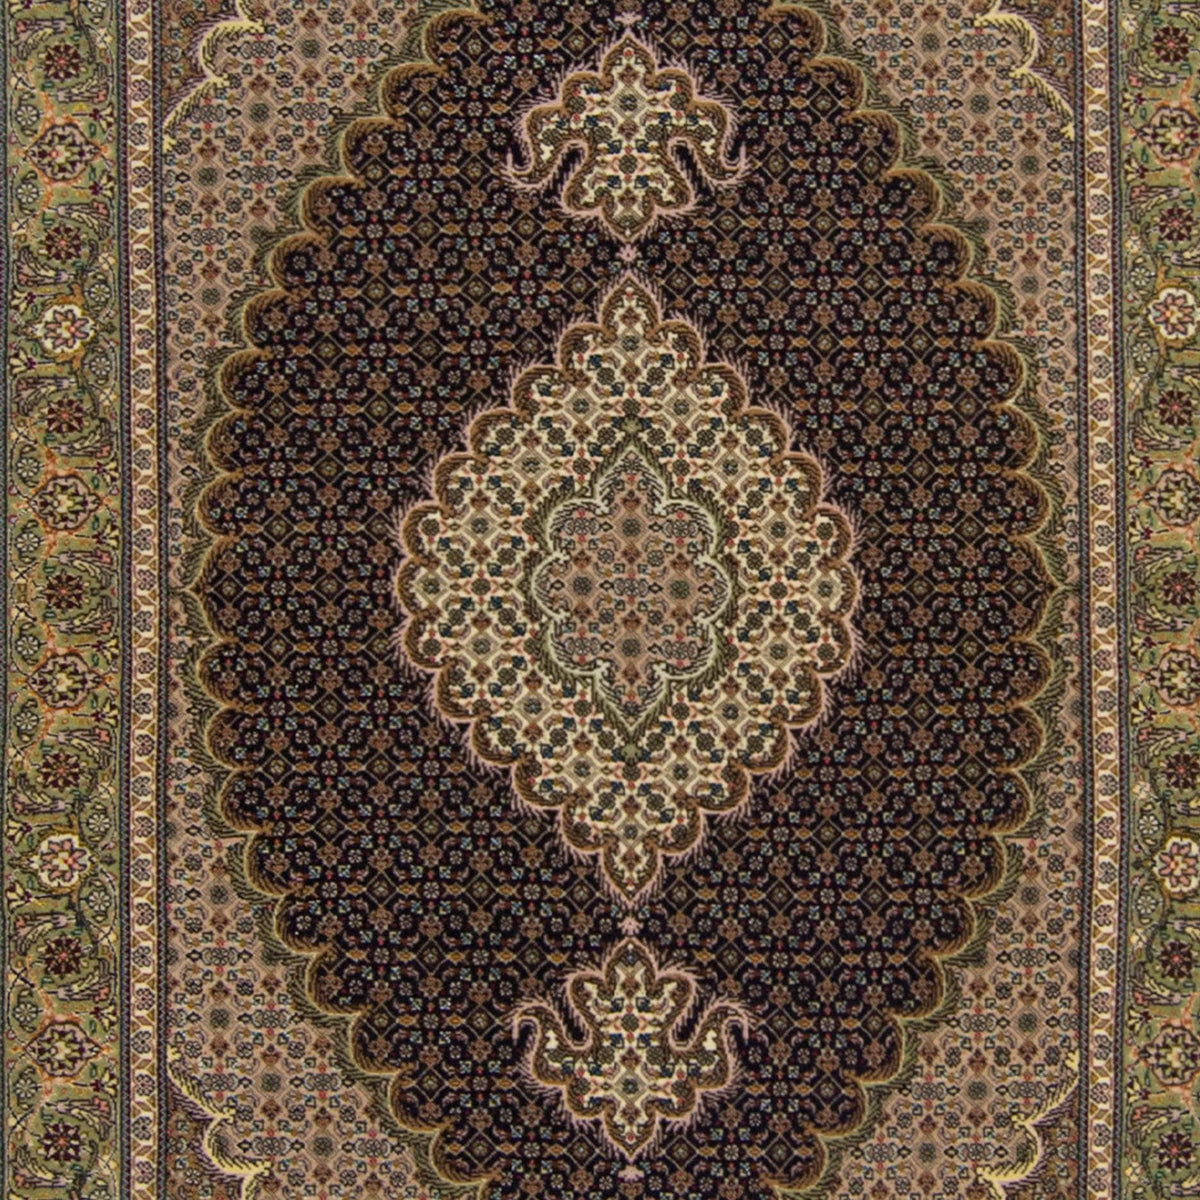 Super Fine Hand-knotted Persian Wool and Silk Tabriz - Mahi Rug 100 cm x 150 cm Persian-Rug | House-of-Haghi | NewMarket | Auckland | NZ | Handmade Persian Rugs | Hand Knotted Persian Rugs